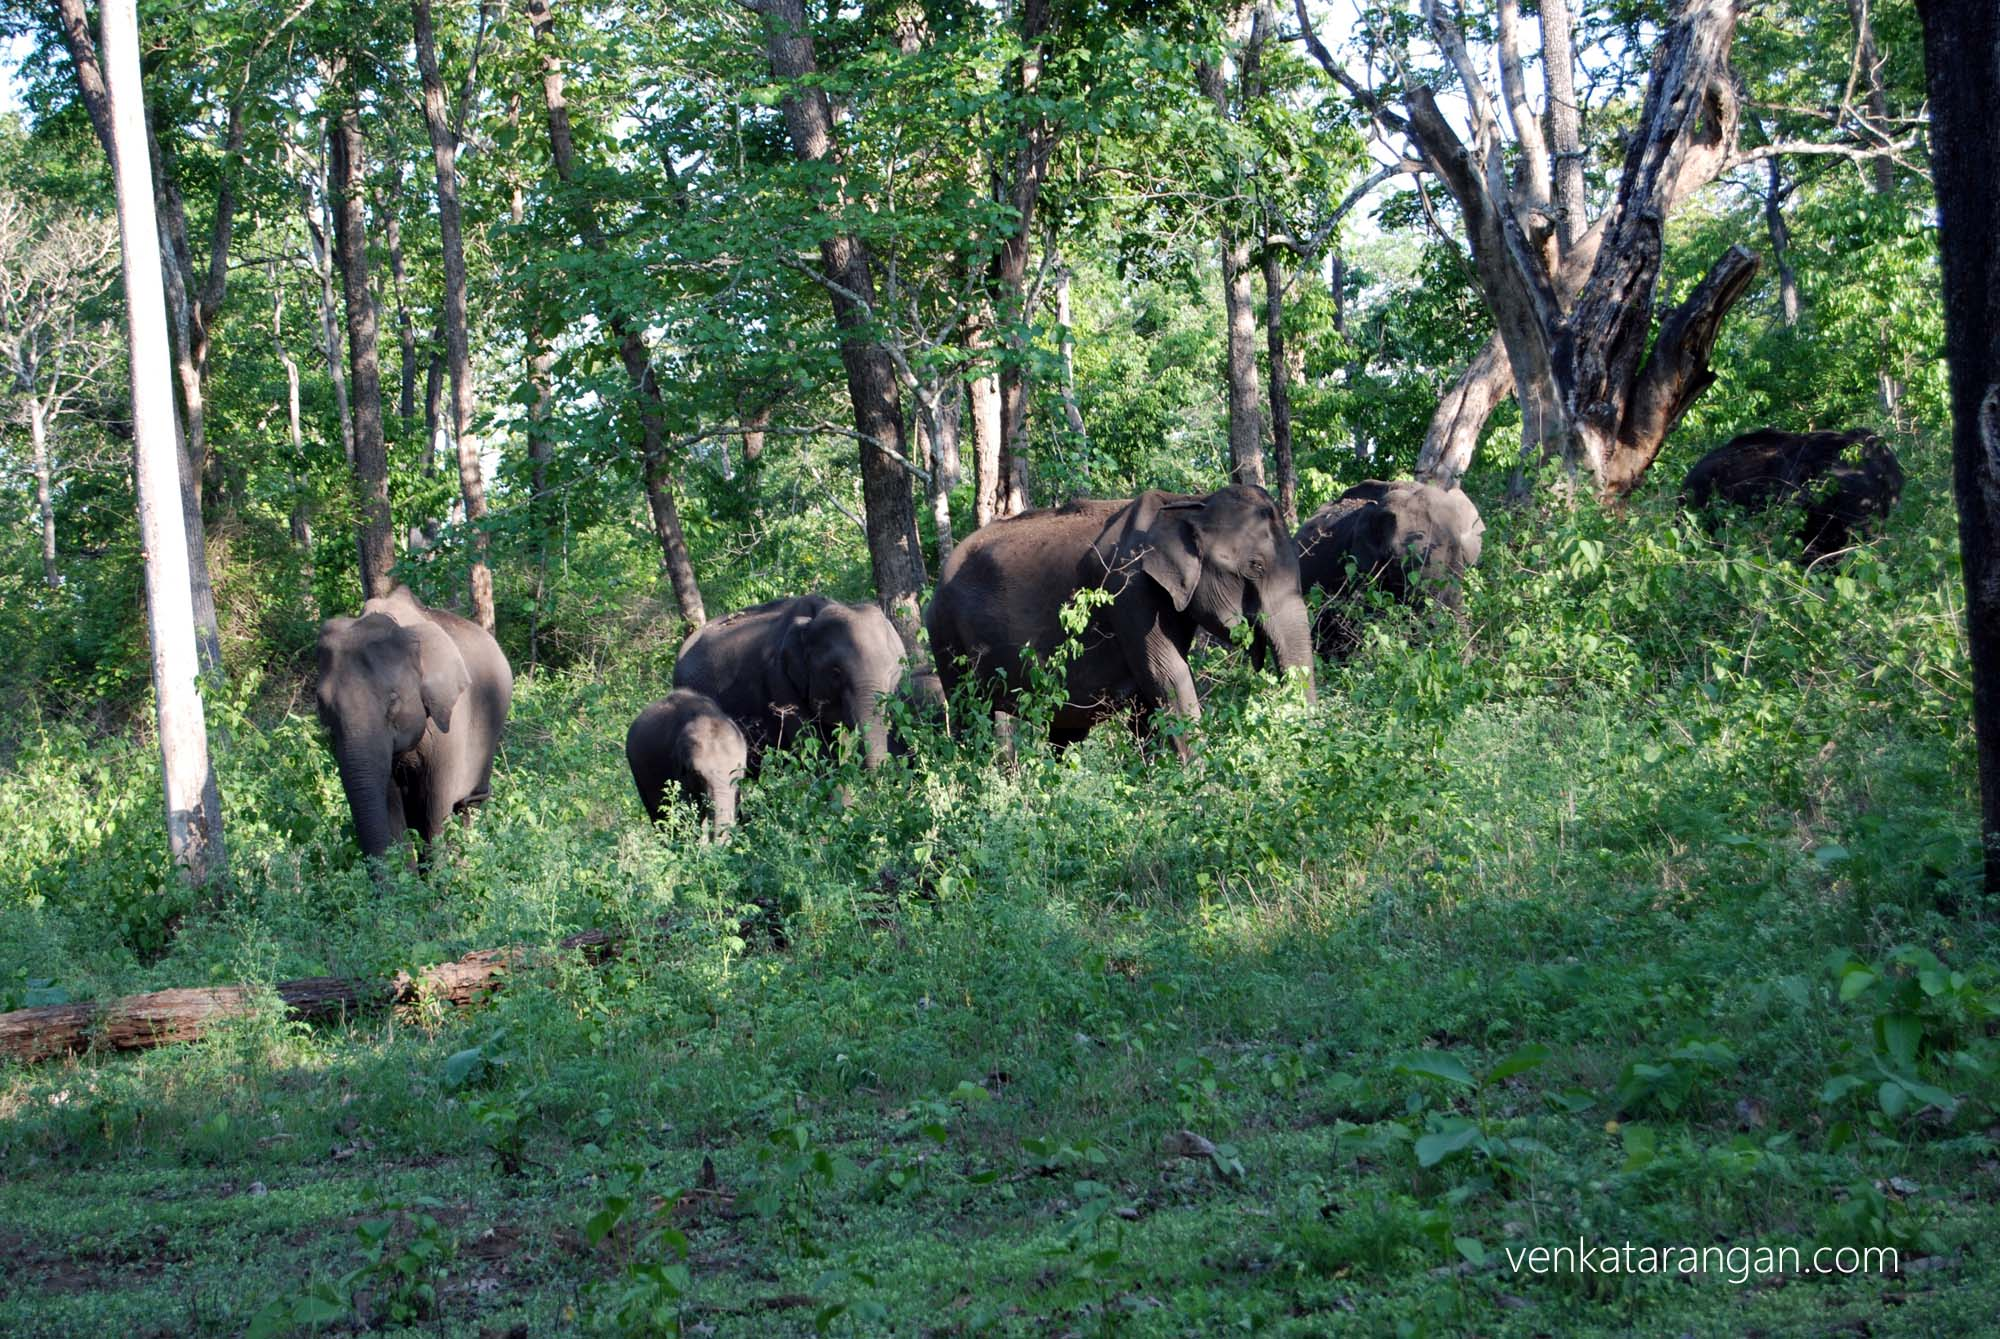 Wild elephant herd inside the forest